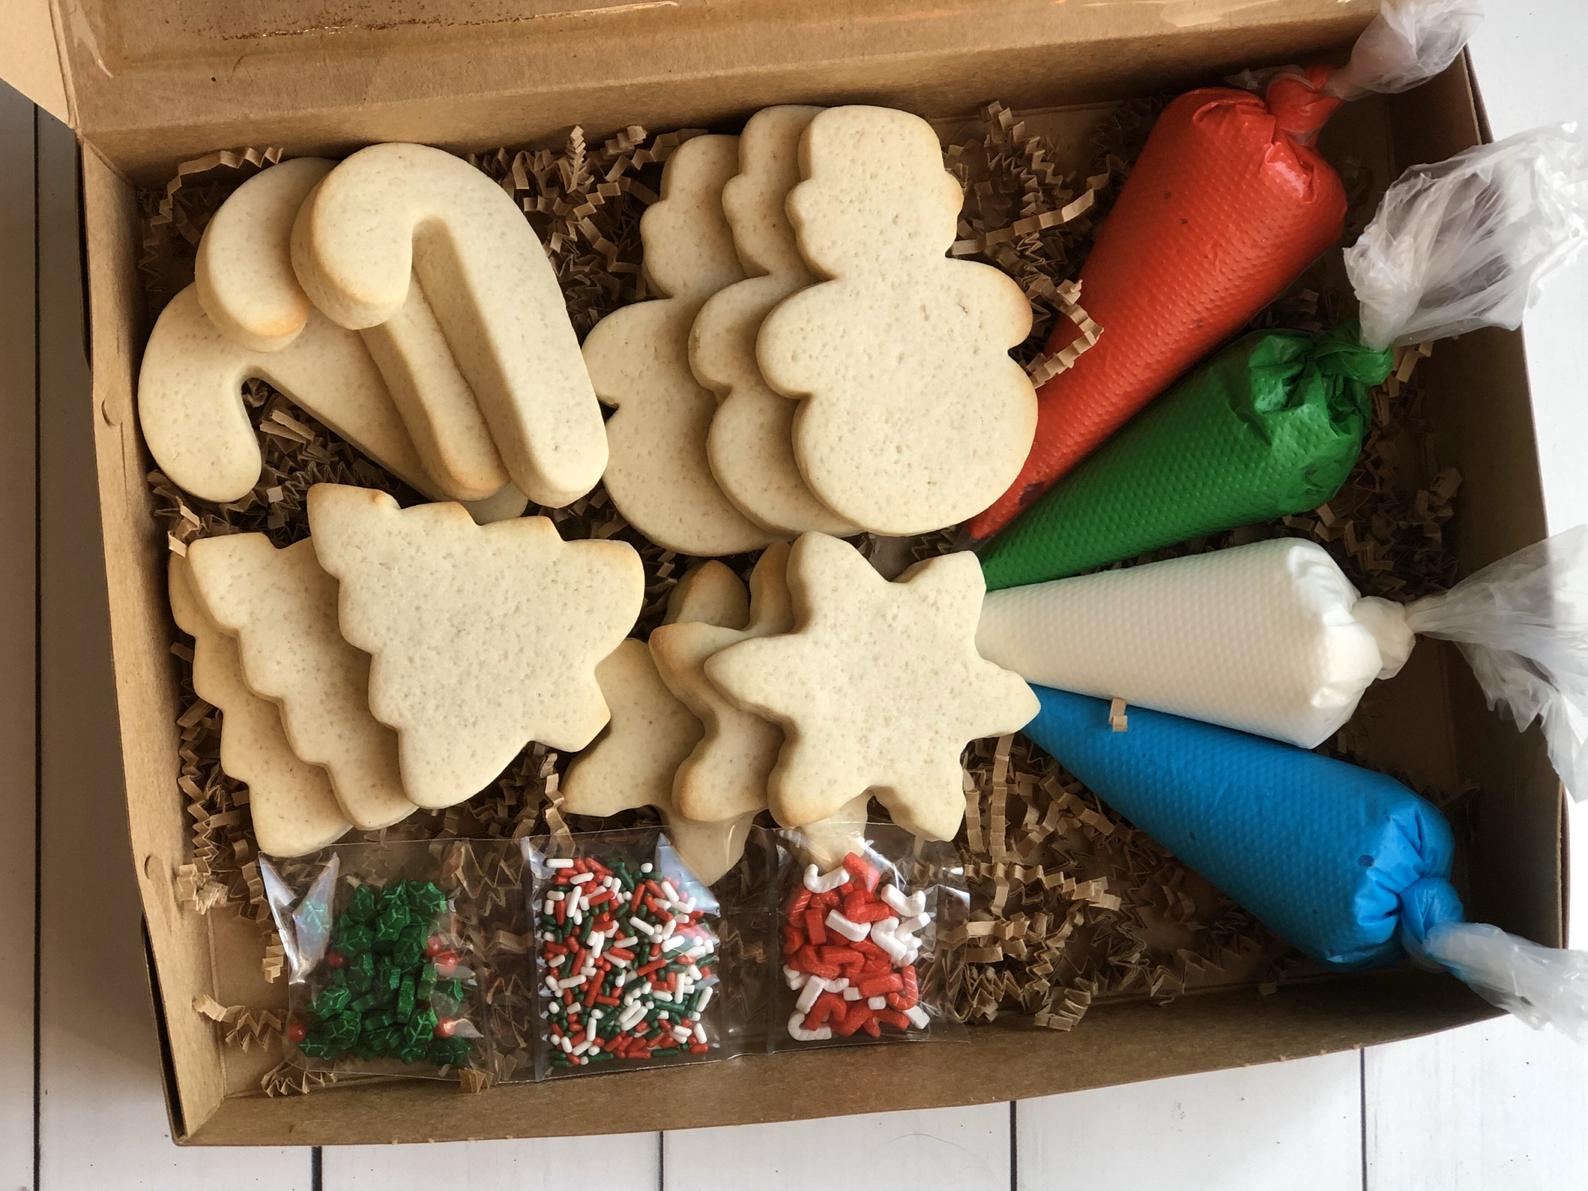 cardboard box with sugar cookies, icing in piping bags, and sprinkles inside